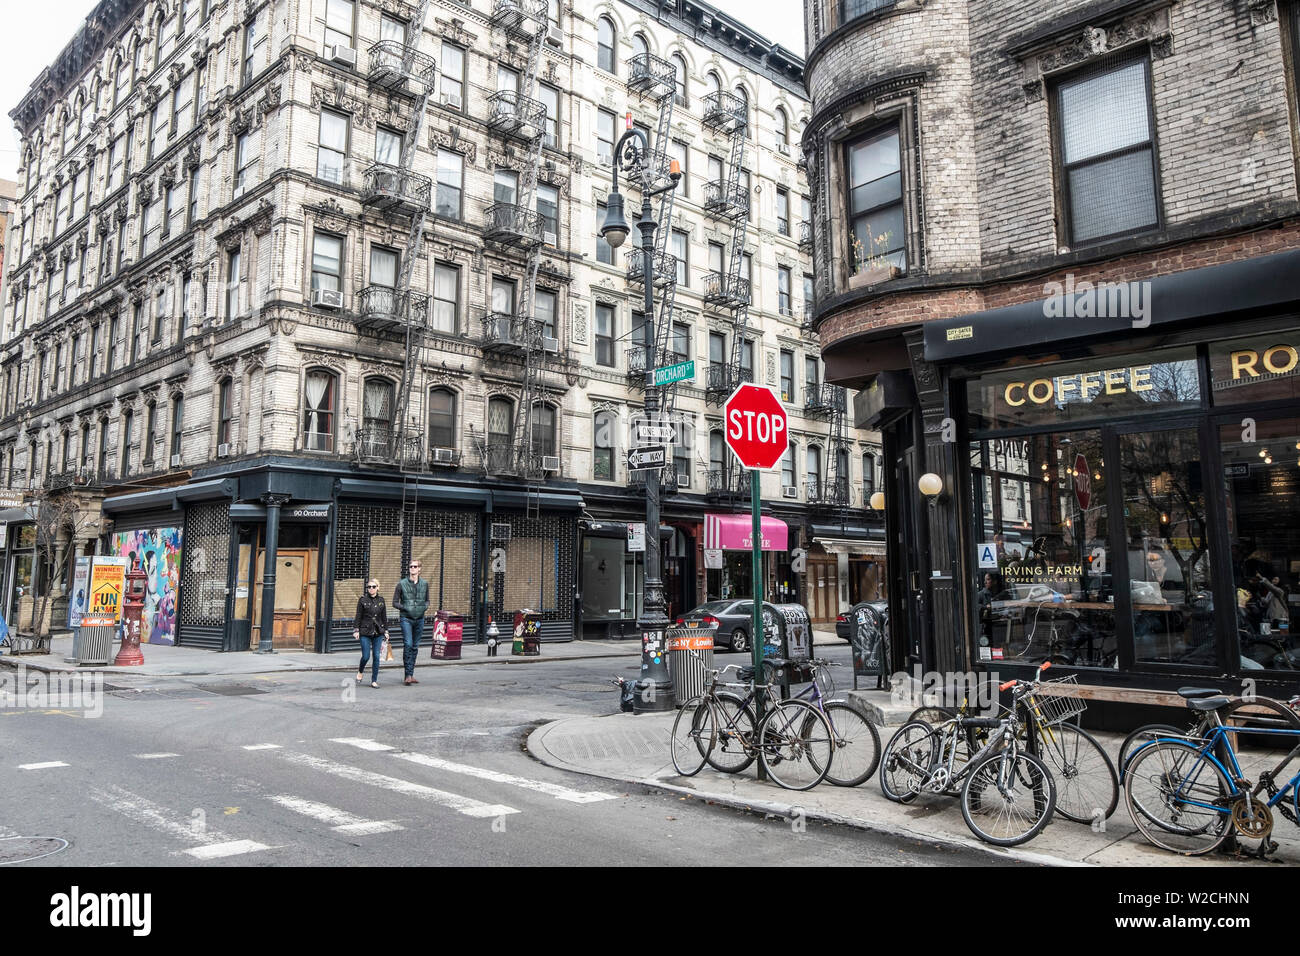 Lower East Side, Manhattan, New York City, New York, USA Banque D'Images